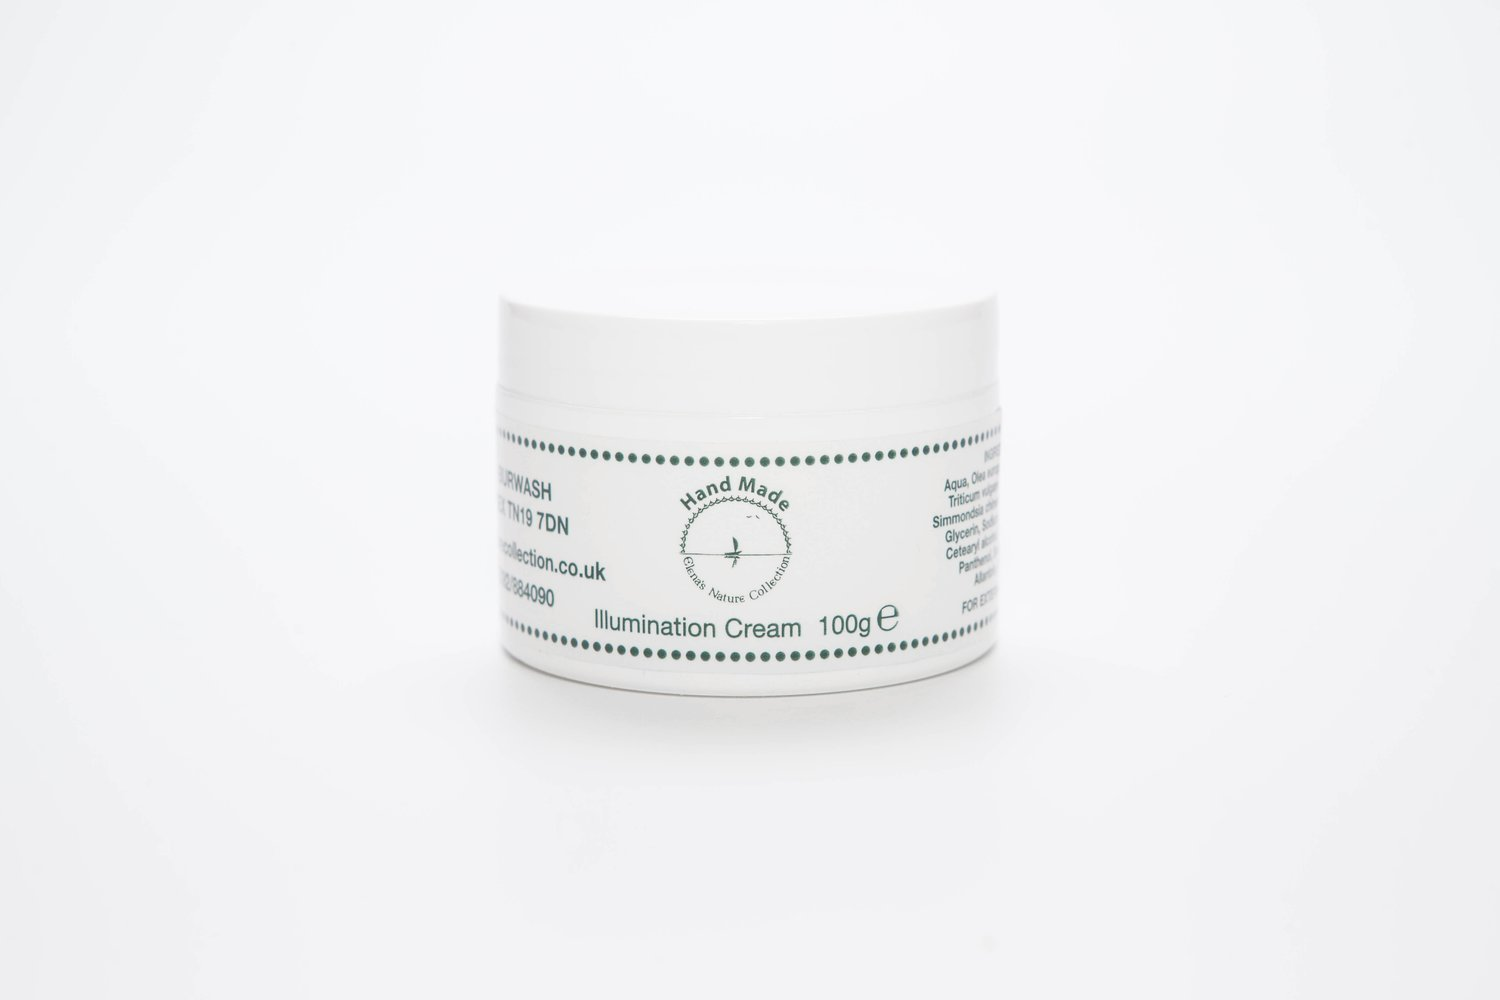 Illumination Cream 100g